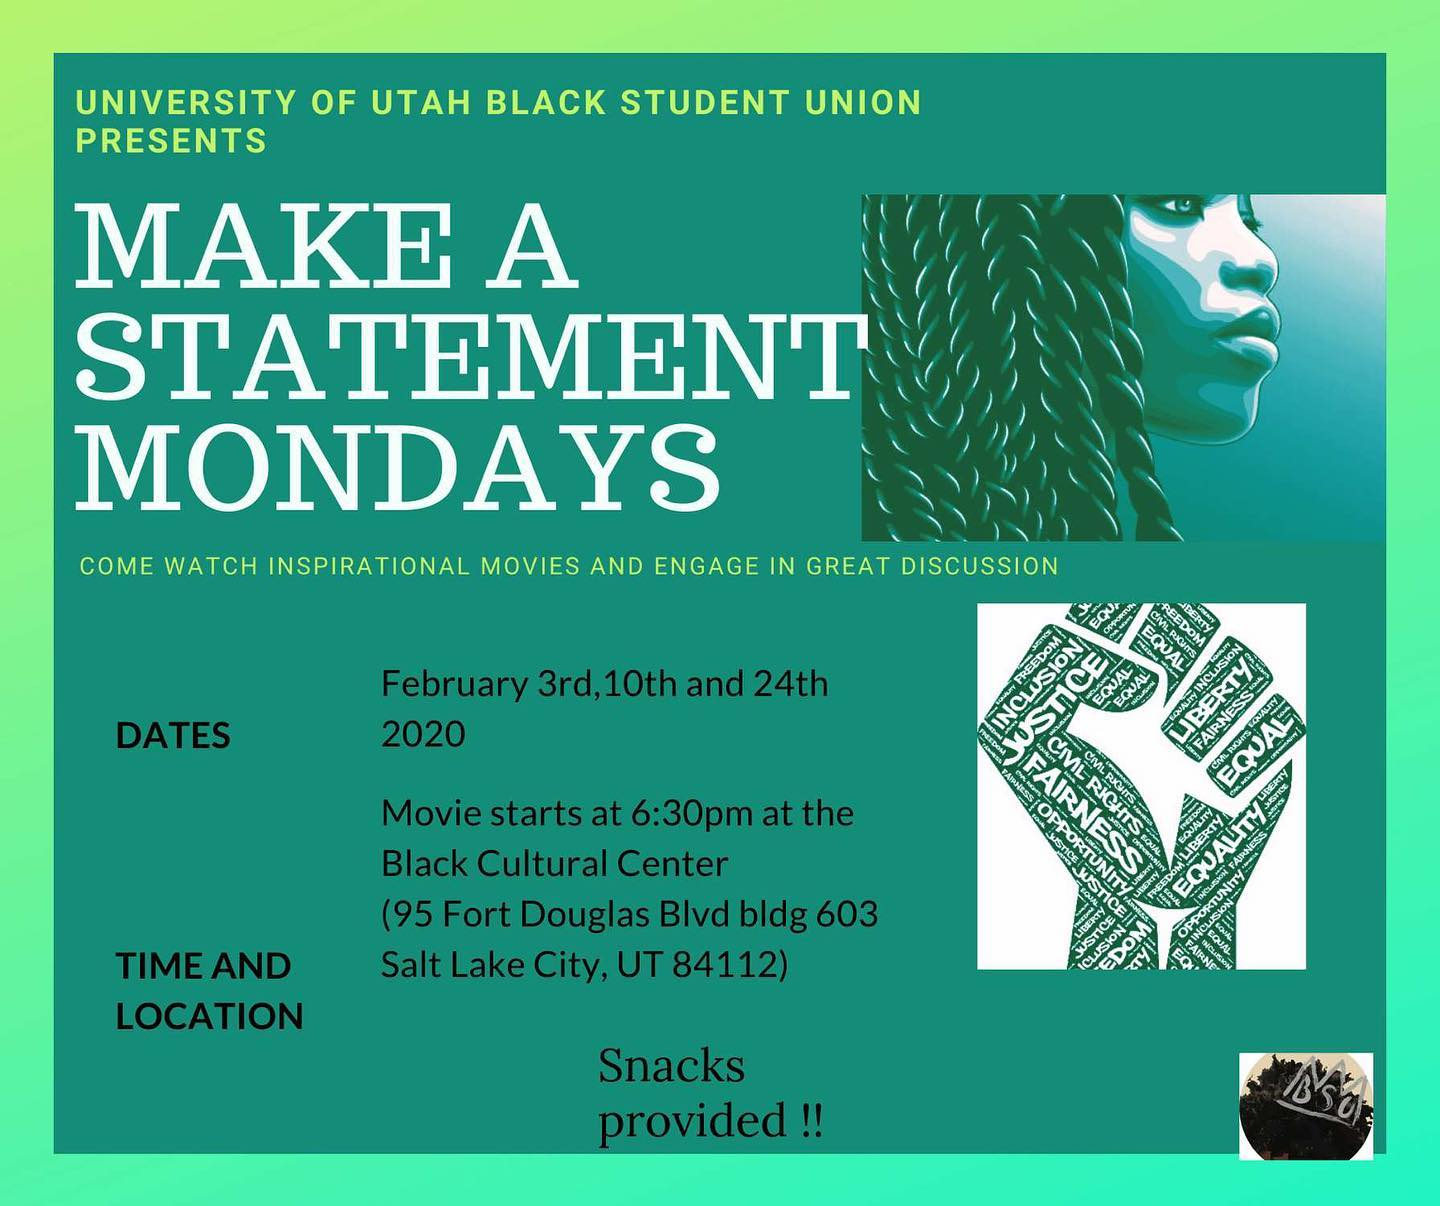 Black Student Union presents Make a Statement Mondays. Come watch inspirational movies and engage in great discussion!